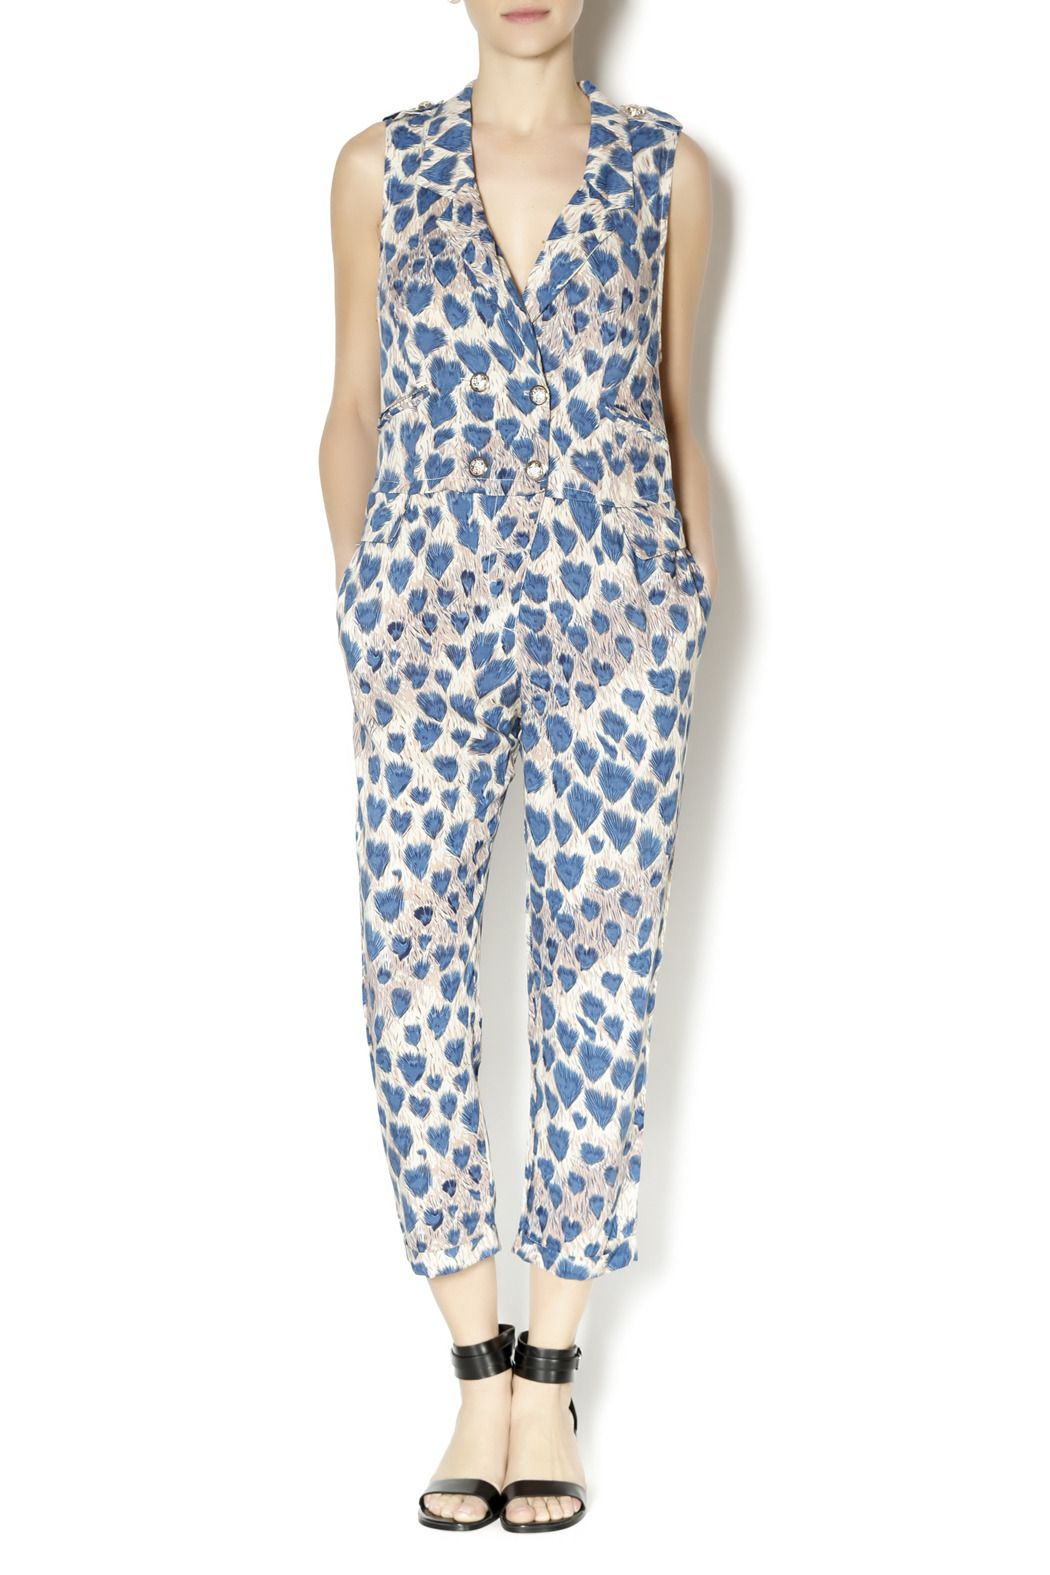 Peacock jumpsuit with a v-neckline and button front closure. Wear this soft jumpsuit all summer with wooden heel sandals.   Peacock Jumpsuit by t.l.b.d.. Clothing - Jumpsuits & Rompers - Jumpsuits Montclair, New Jersey